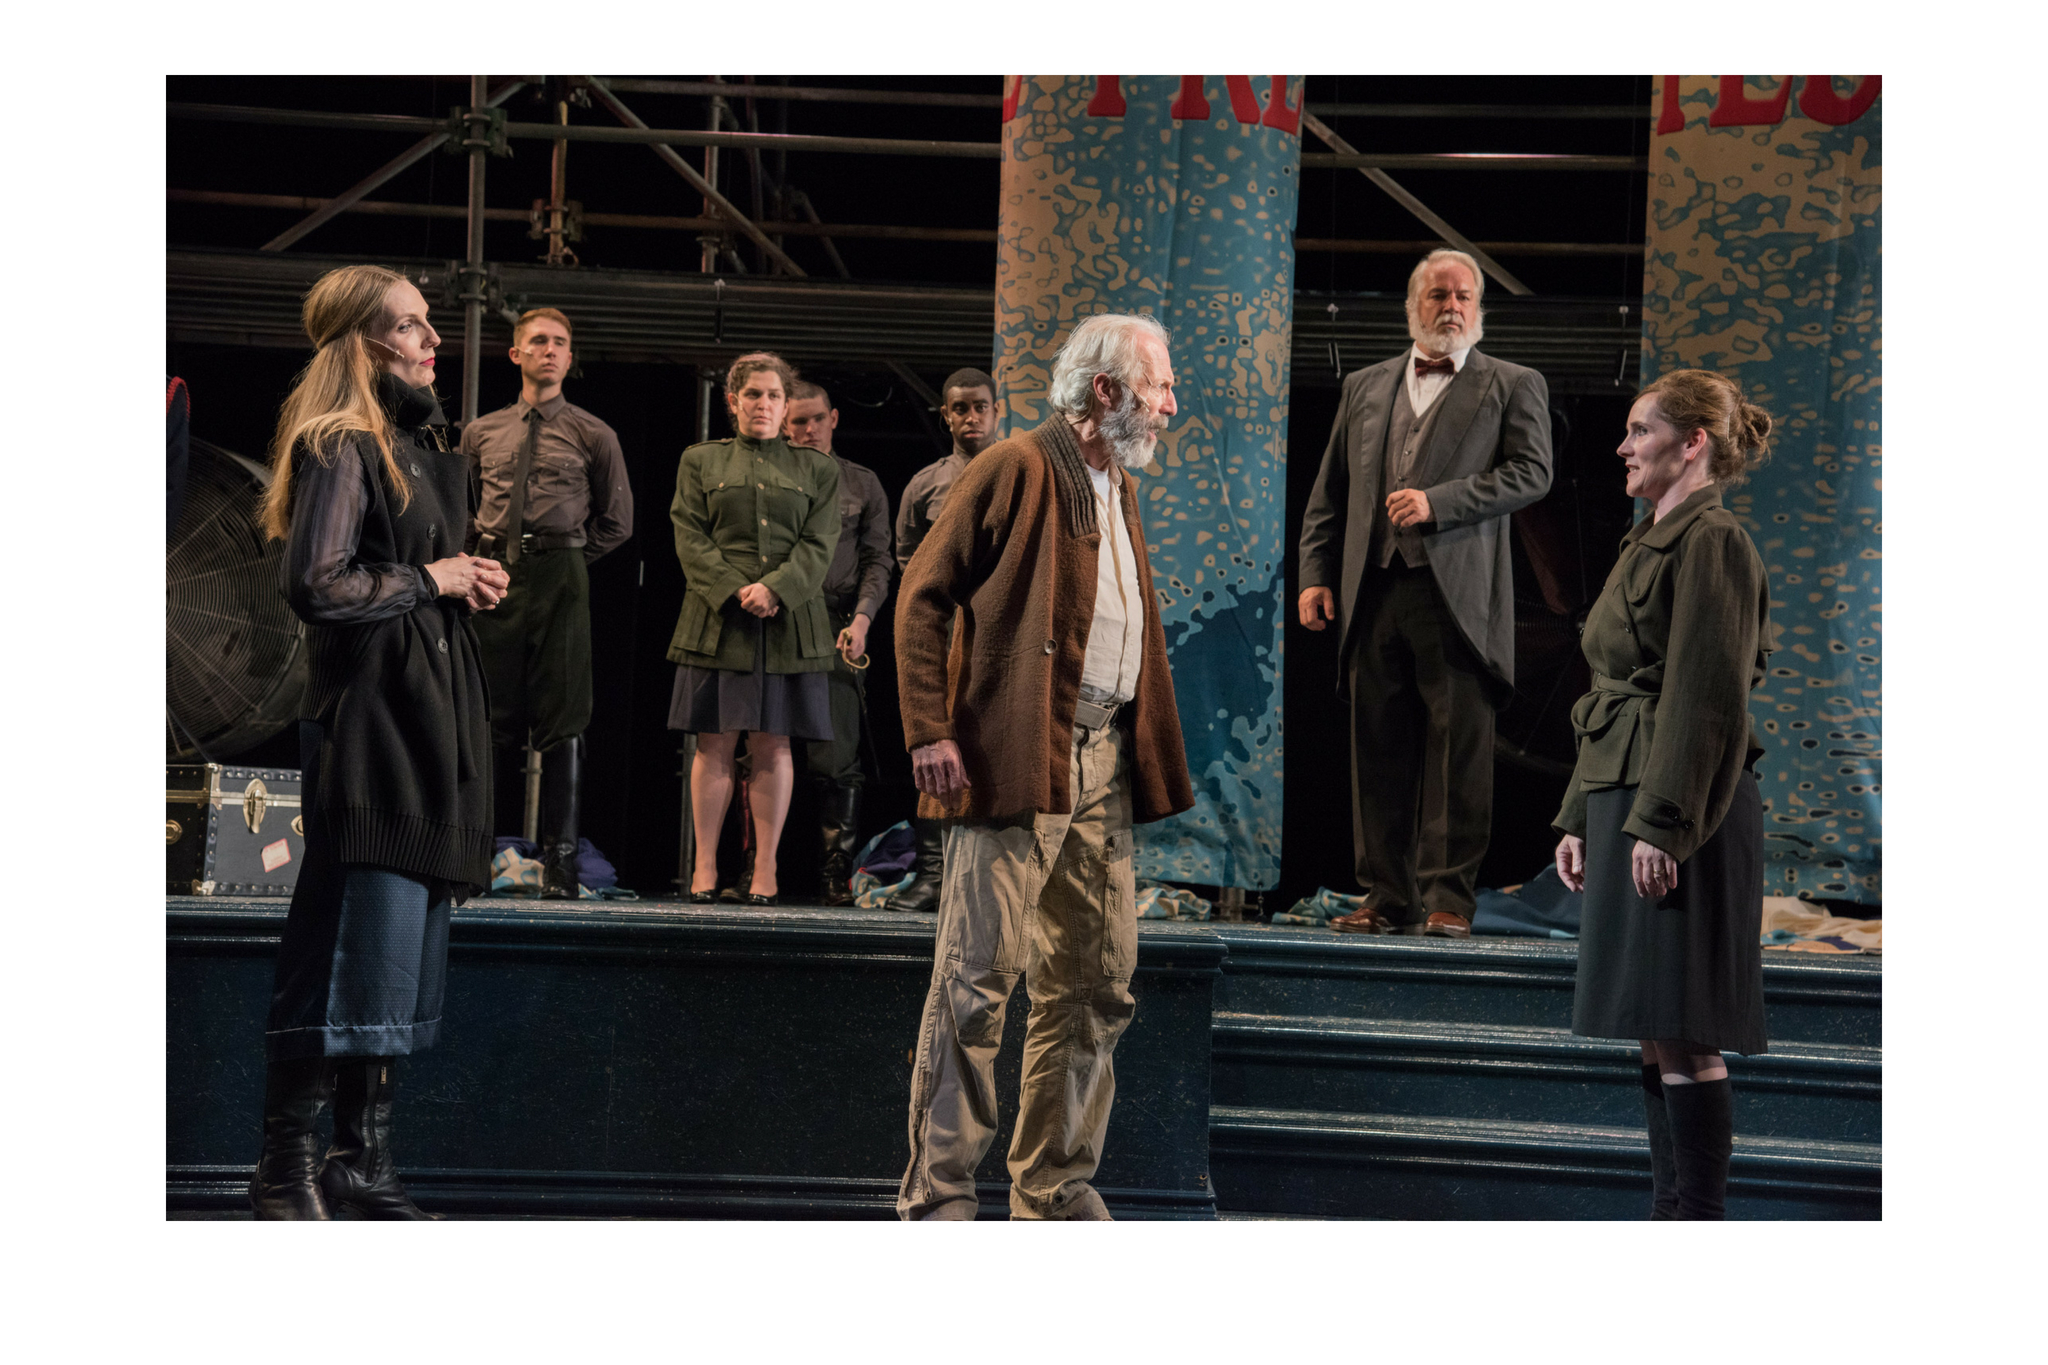 Deb Martin (Goneril), Jacob Rosenbaum (Soldier), Kelsey Lidsky (Soldier), Eliott Purcell (Soldier), Marc Pierre (Soldier), Will Lyman (King Lear), Fred Sullivan, Jr. (Earl of Gloucester), and Jeanine Kane (Regan) in King Lear, Shakespeare on the Common 2015-Photo by Andrew Brilliant